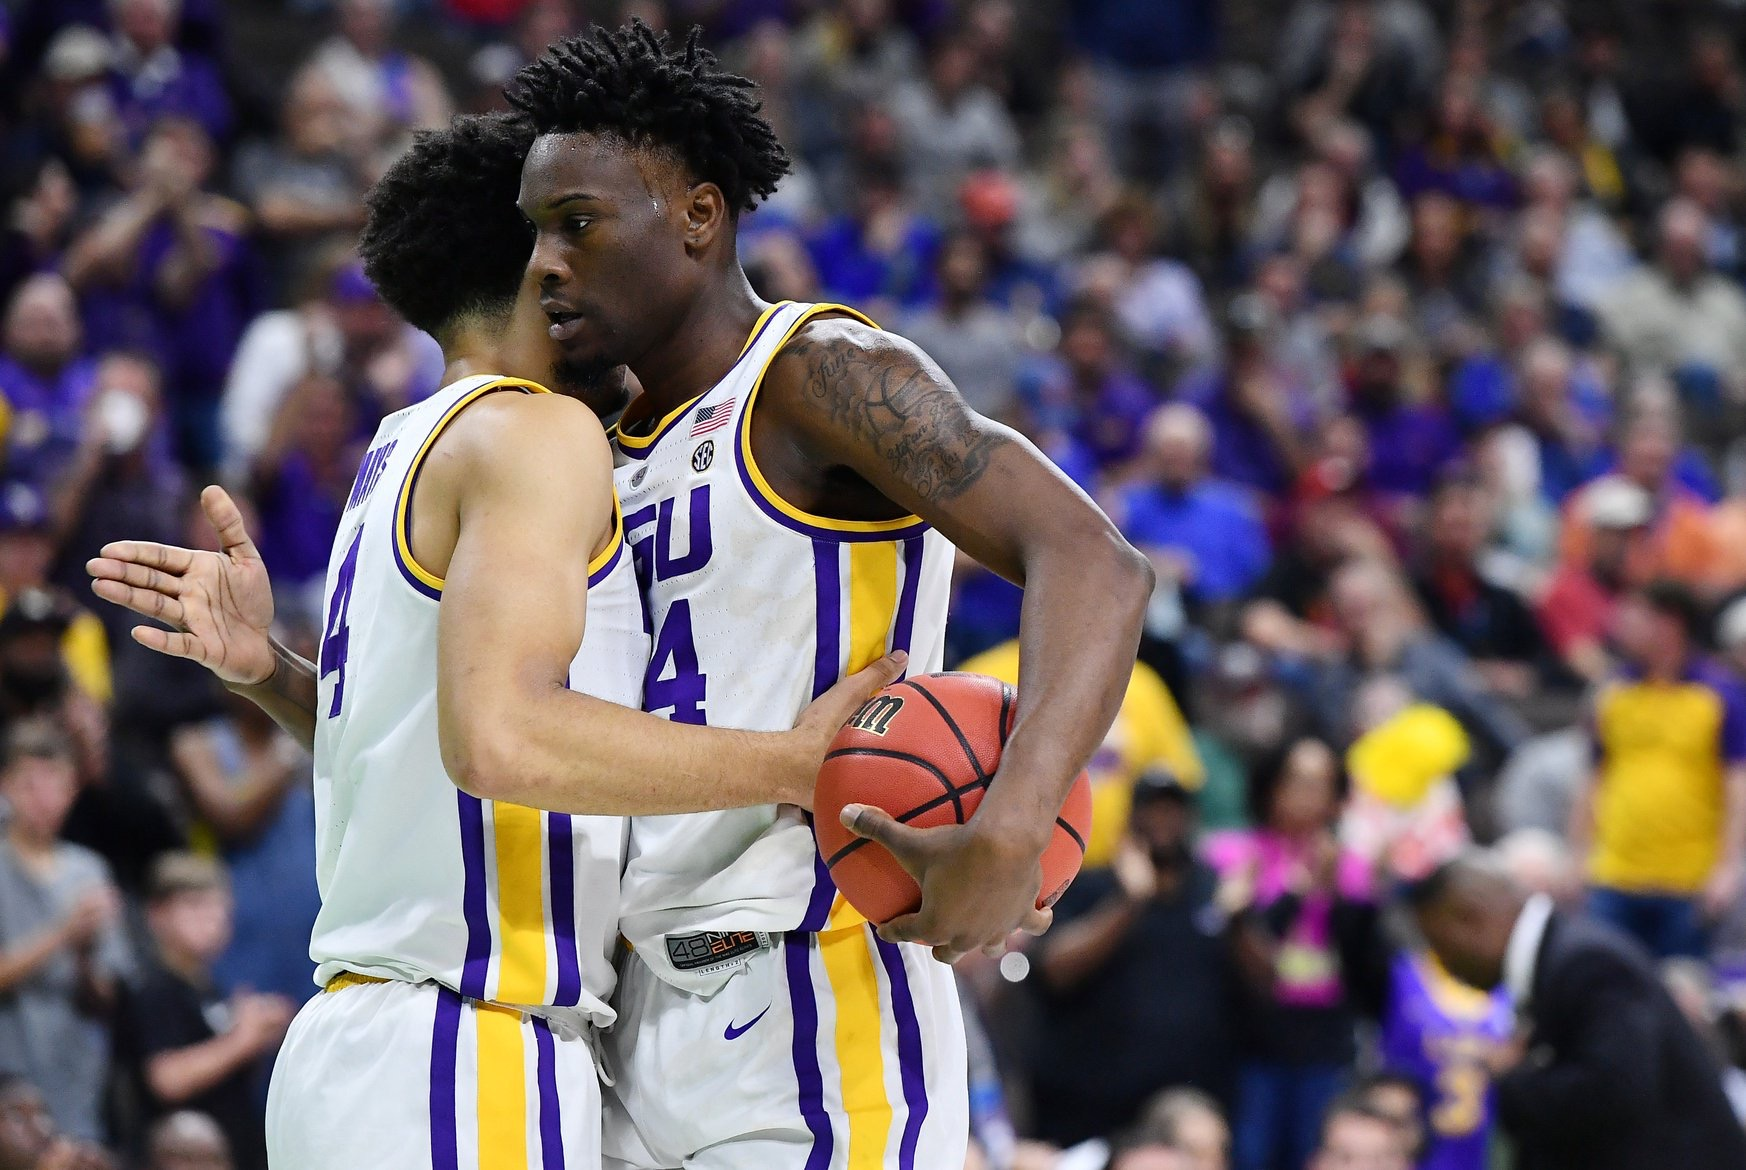 Watch: Highlights from LSU's 79-74 win over Yale